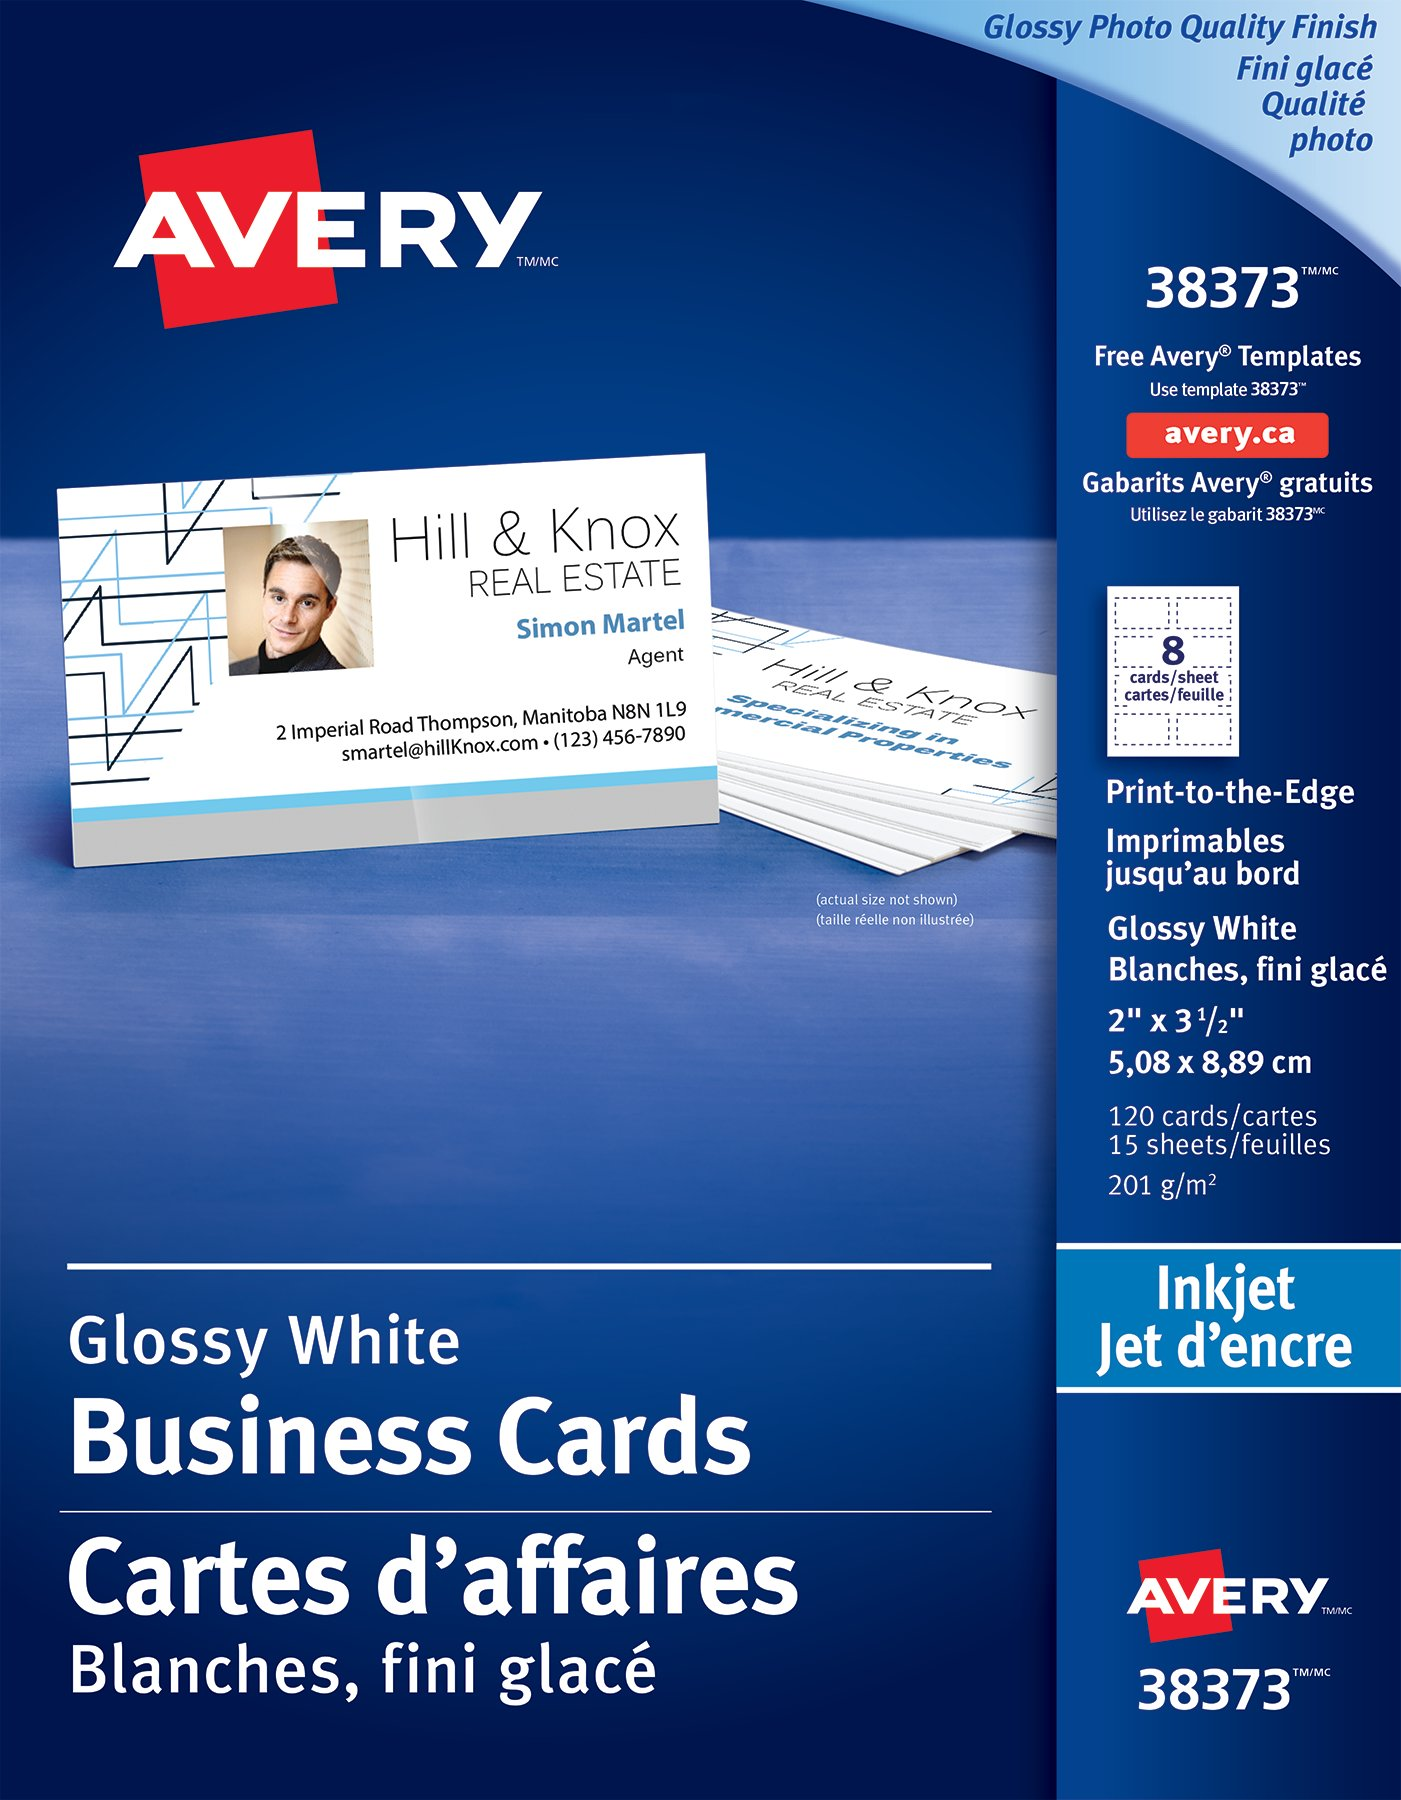 Business cards make your own online custom business card printing avery glossy photo quality business cards 38373 2 x 3 rectangle reheart Choice Image